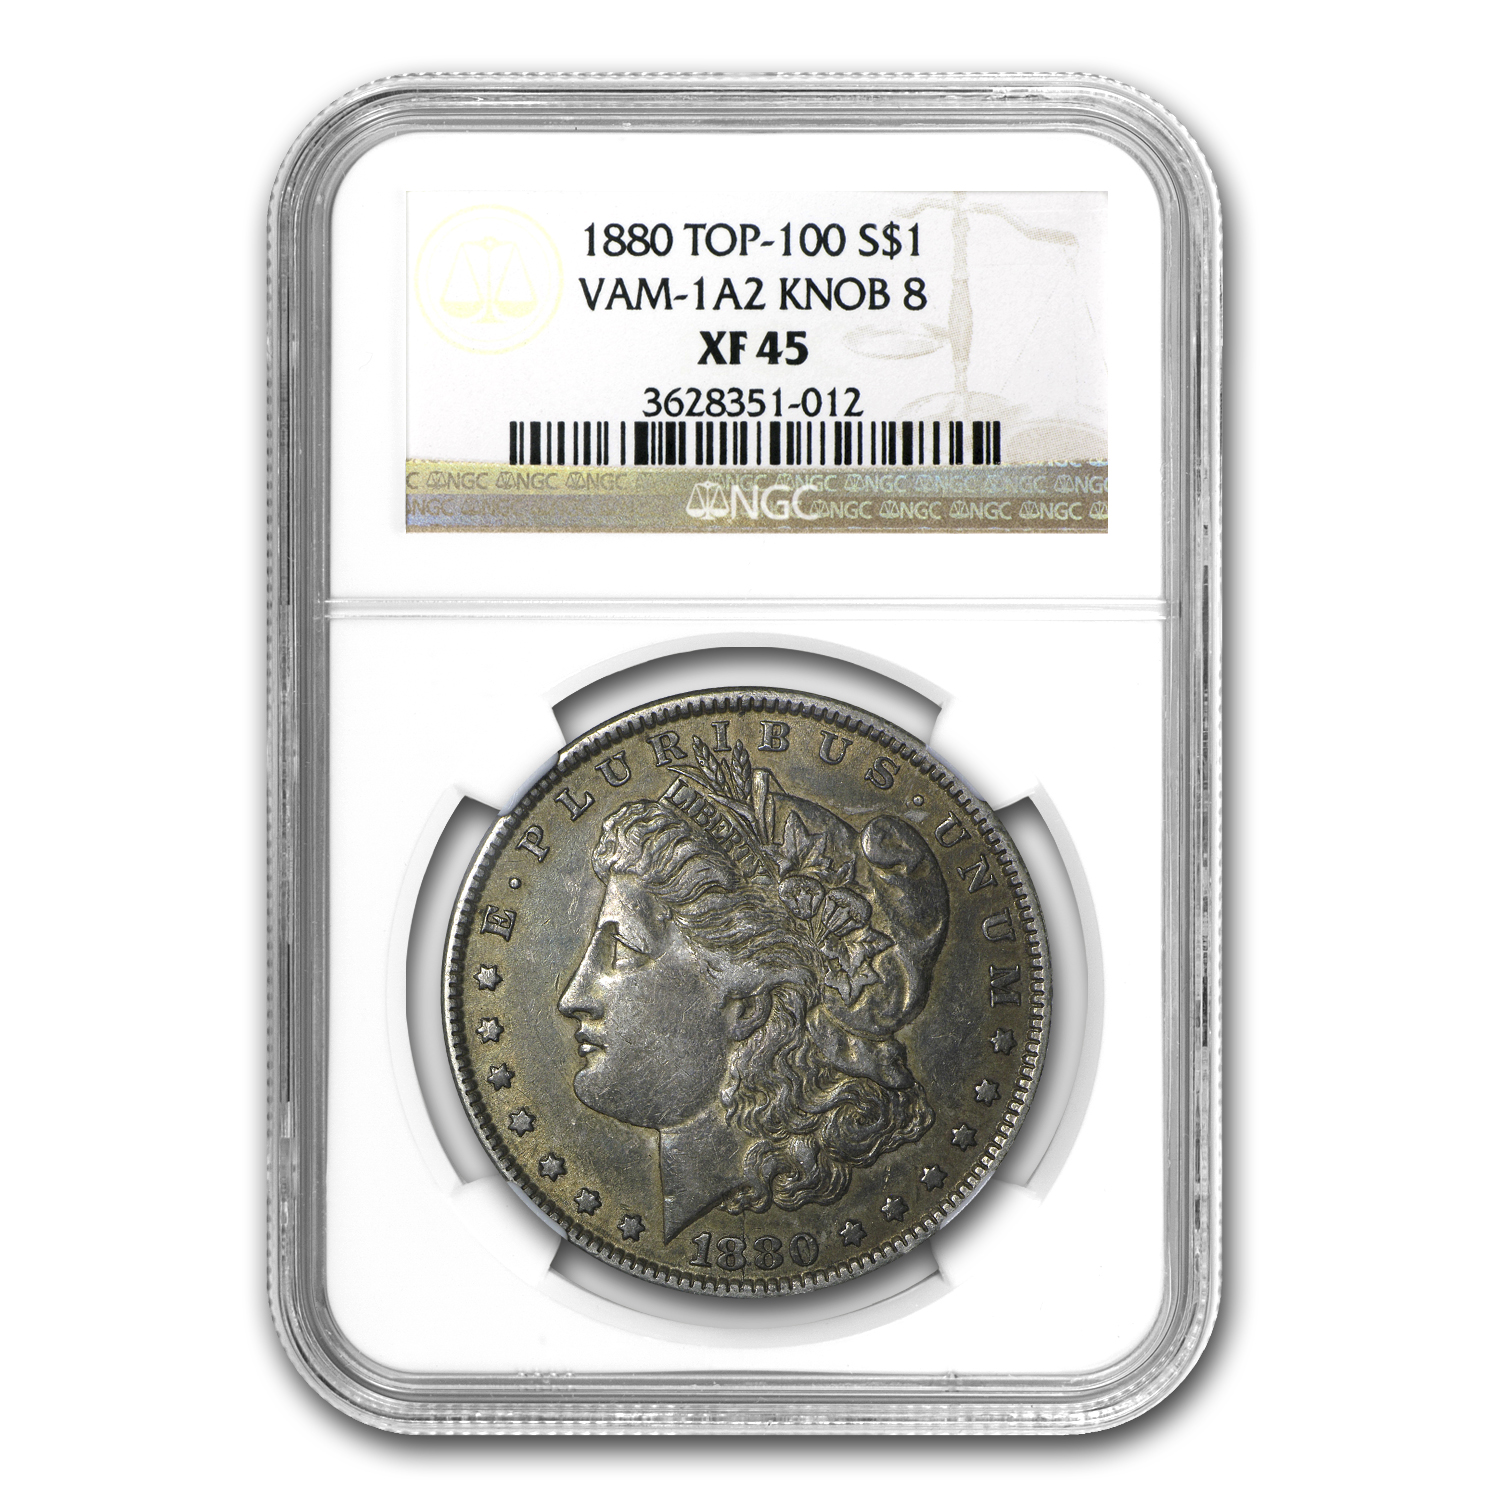 1880 Morgan Dollar XF-45 NGC (VAM-1A2, Knobbed 8, Top-100)